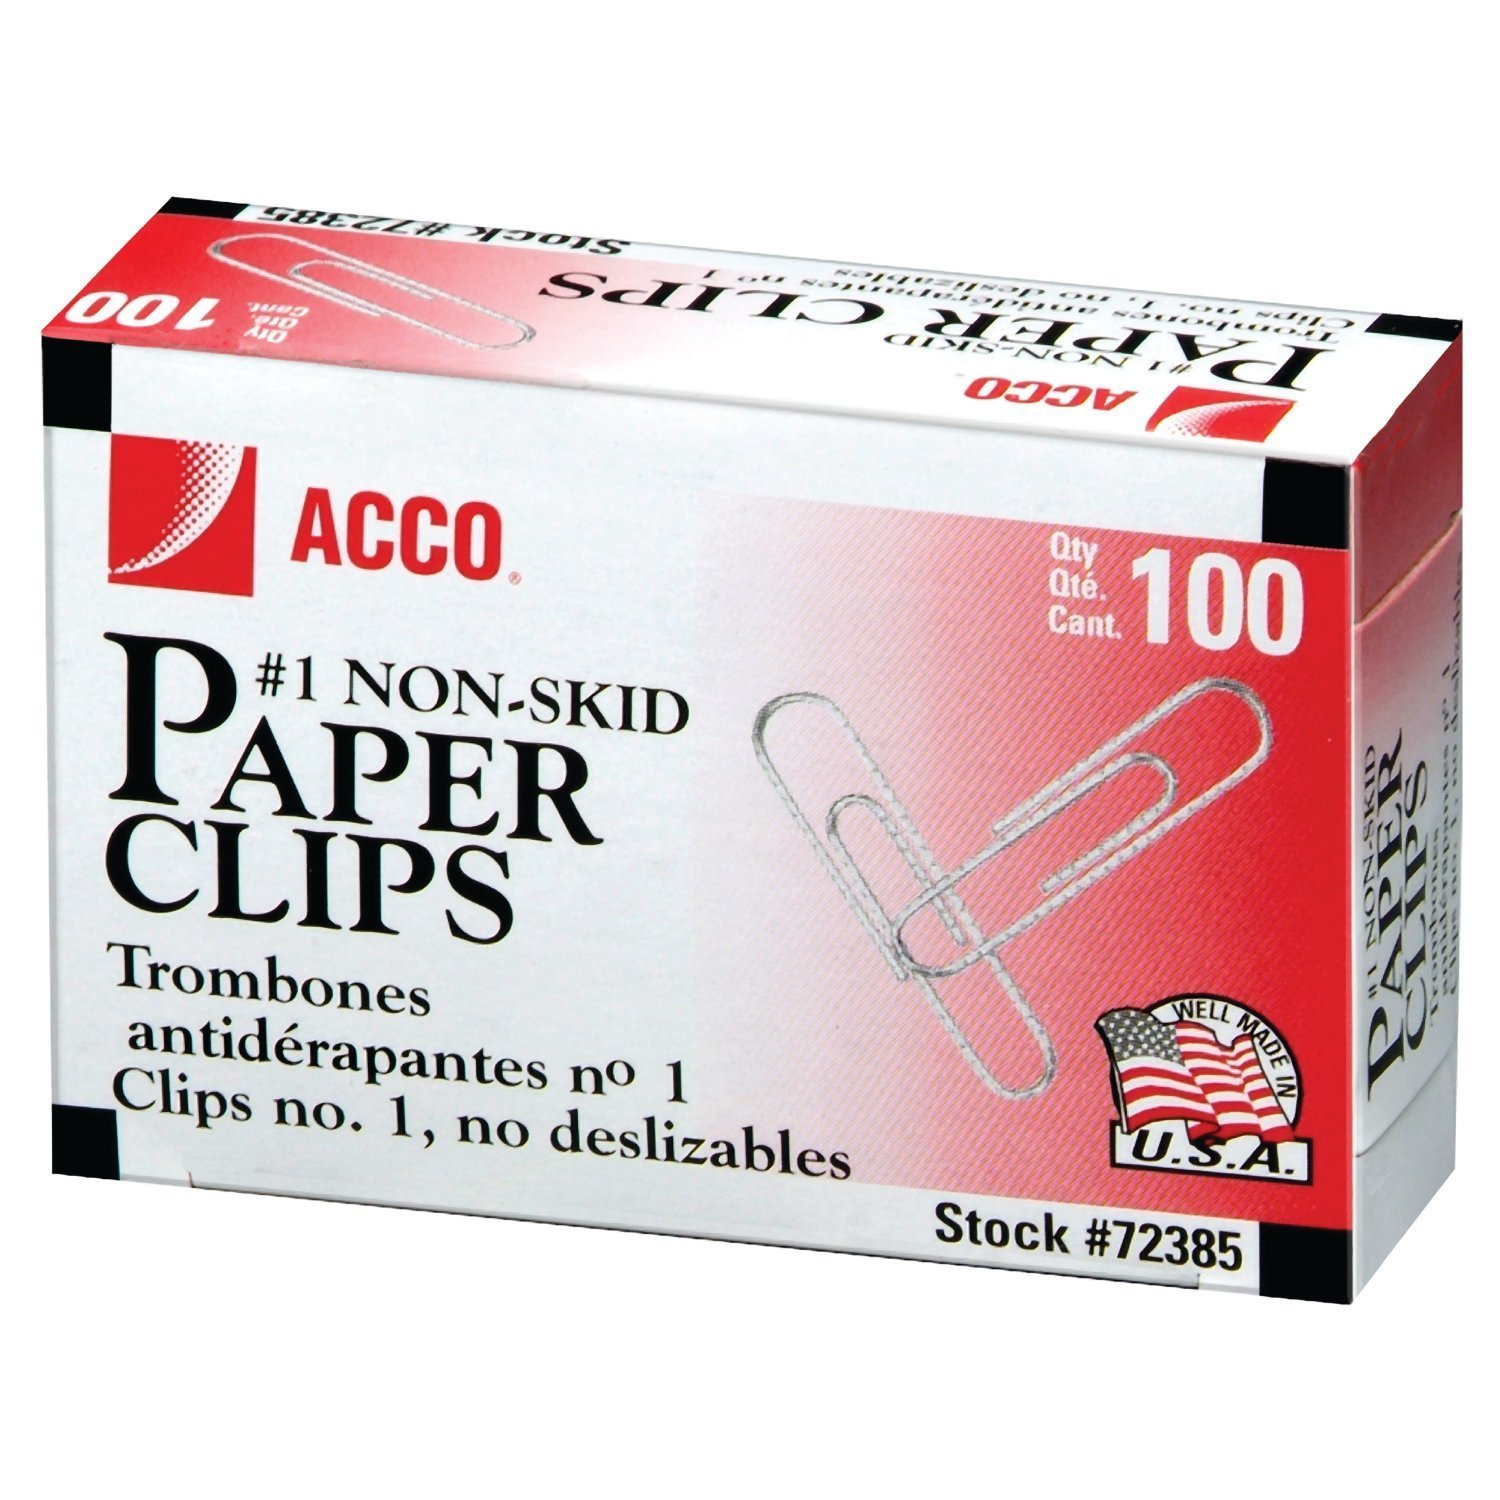 ACCO Paper Clips